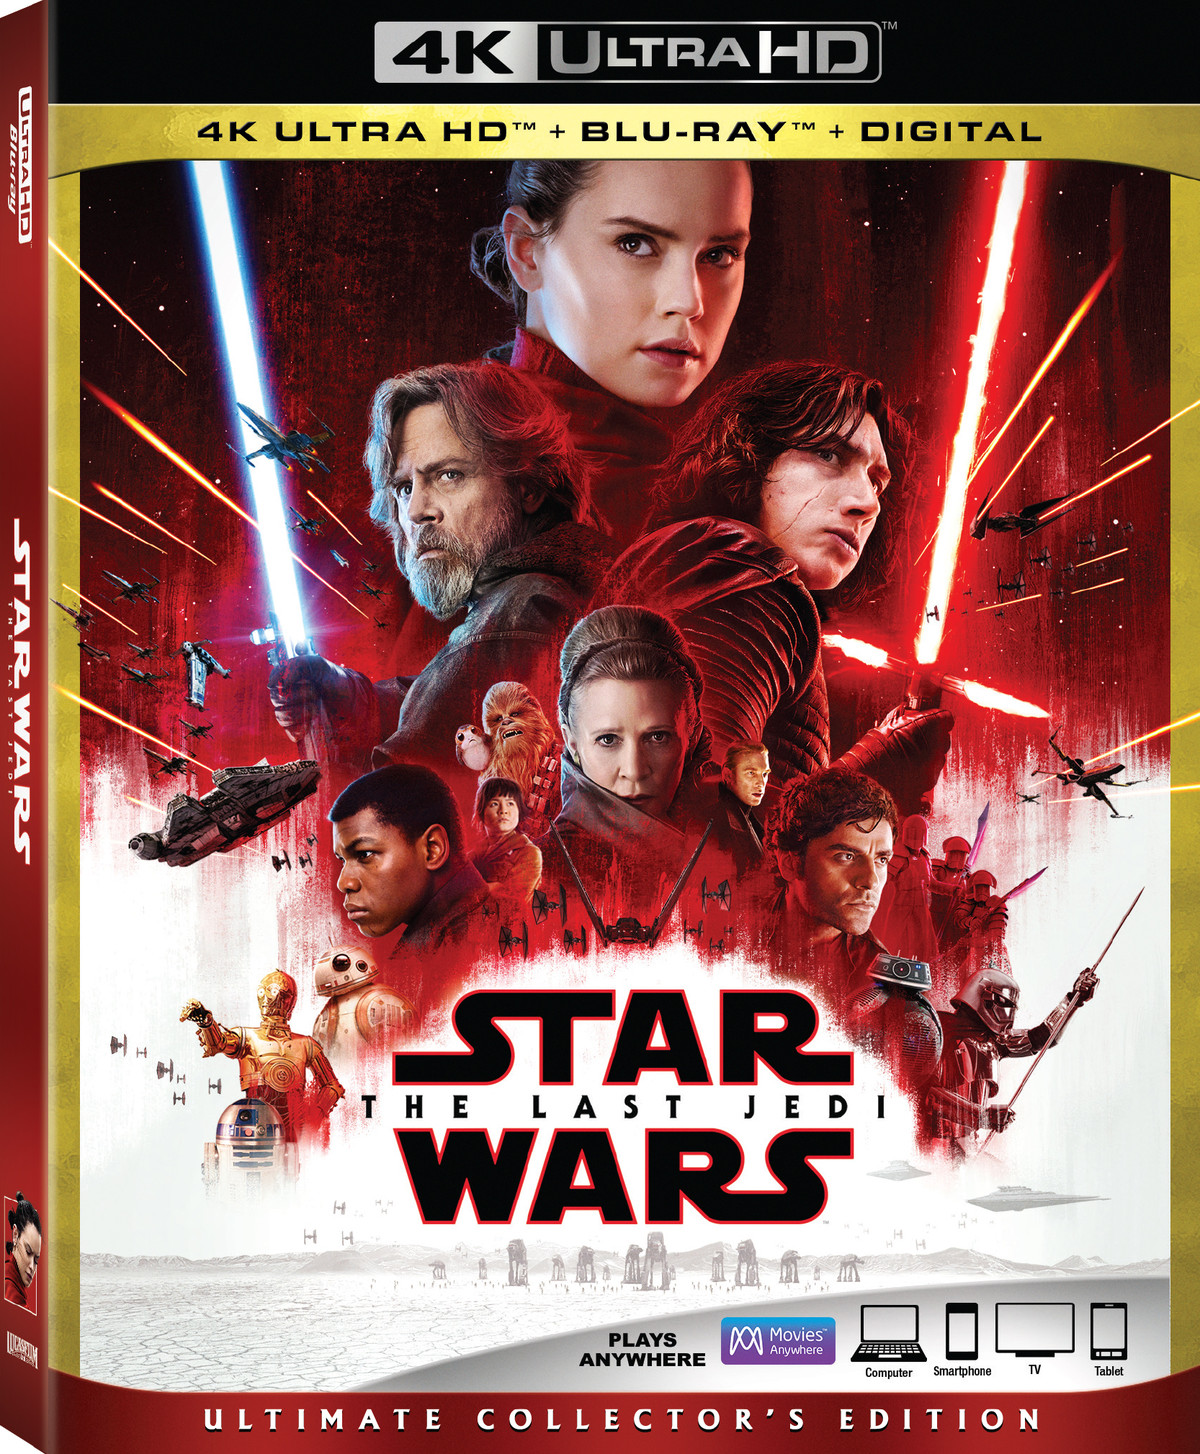 The Last Jedi will be the first Star Wars 4K home video release